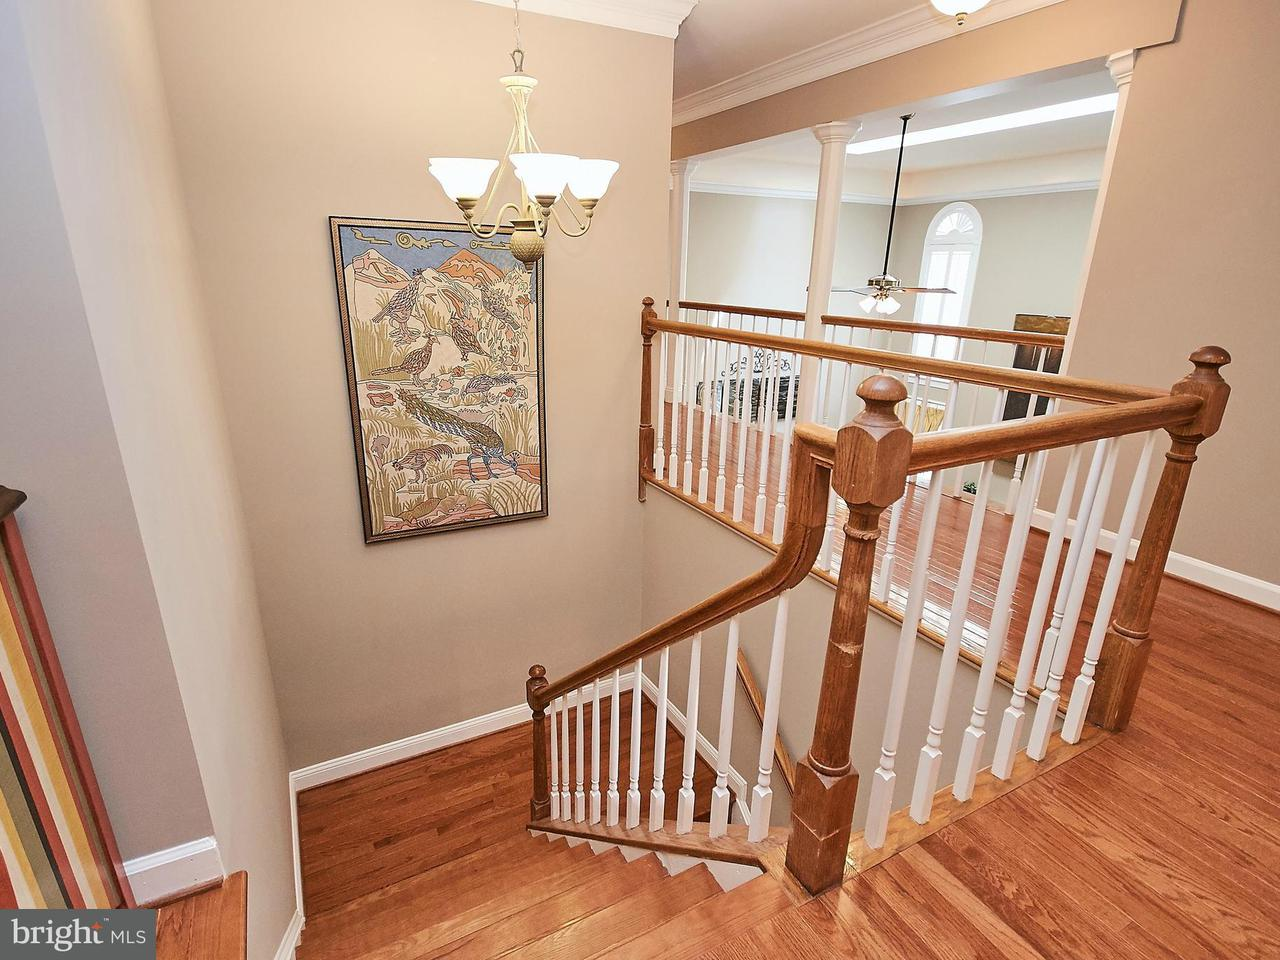 Single Family Home for Sale at 10848 Henderson Road 10848 Henderson Road Fairfax Station, Virginia 22039 United States